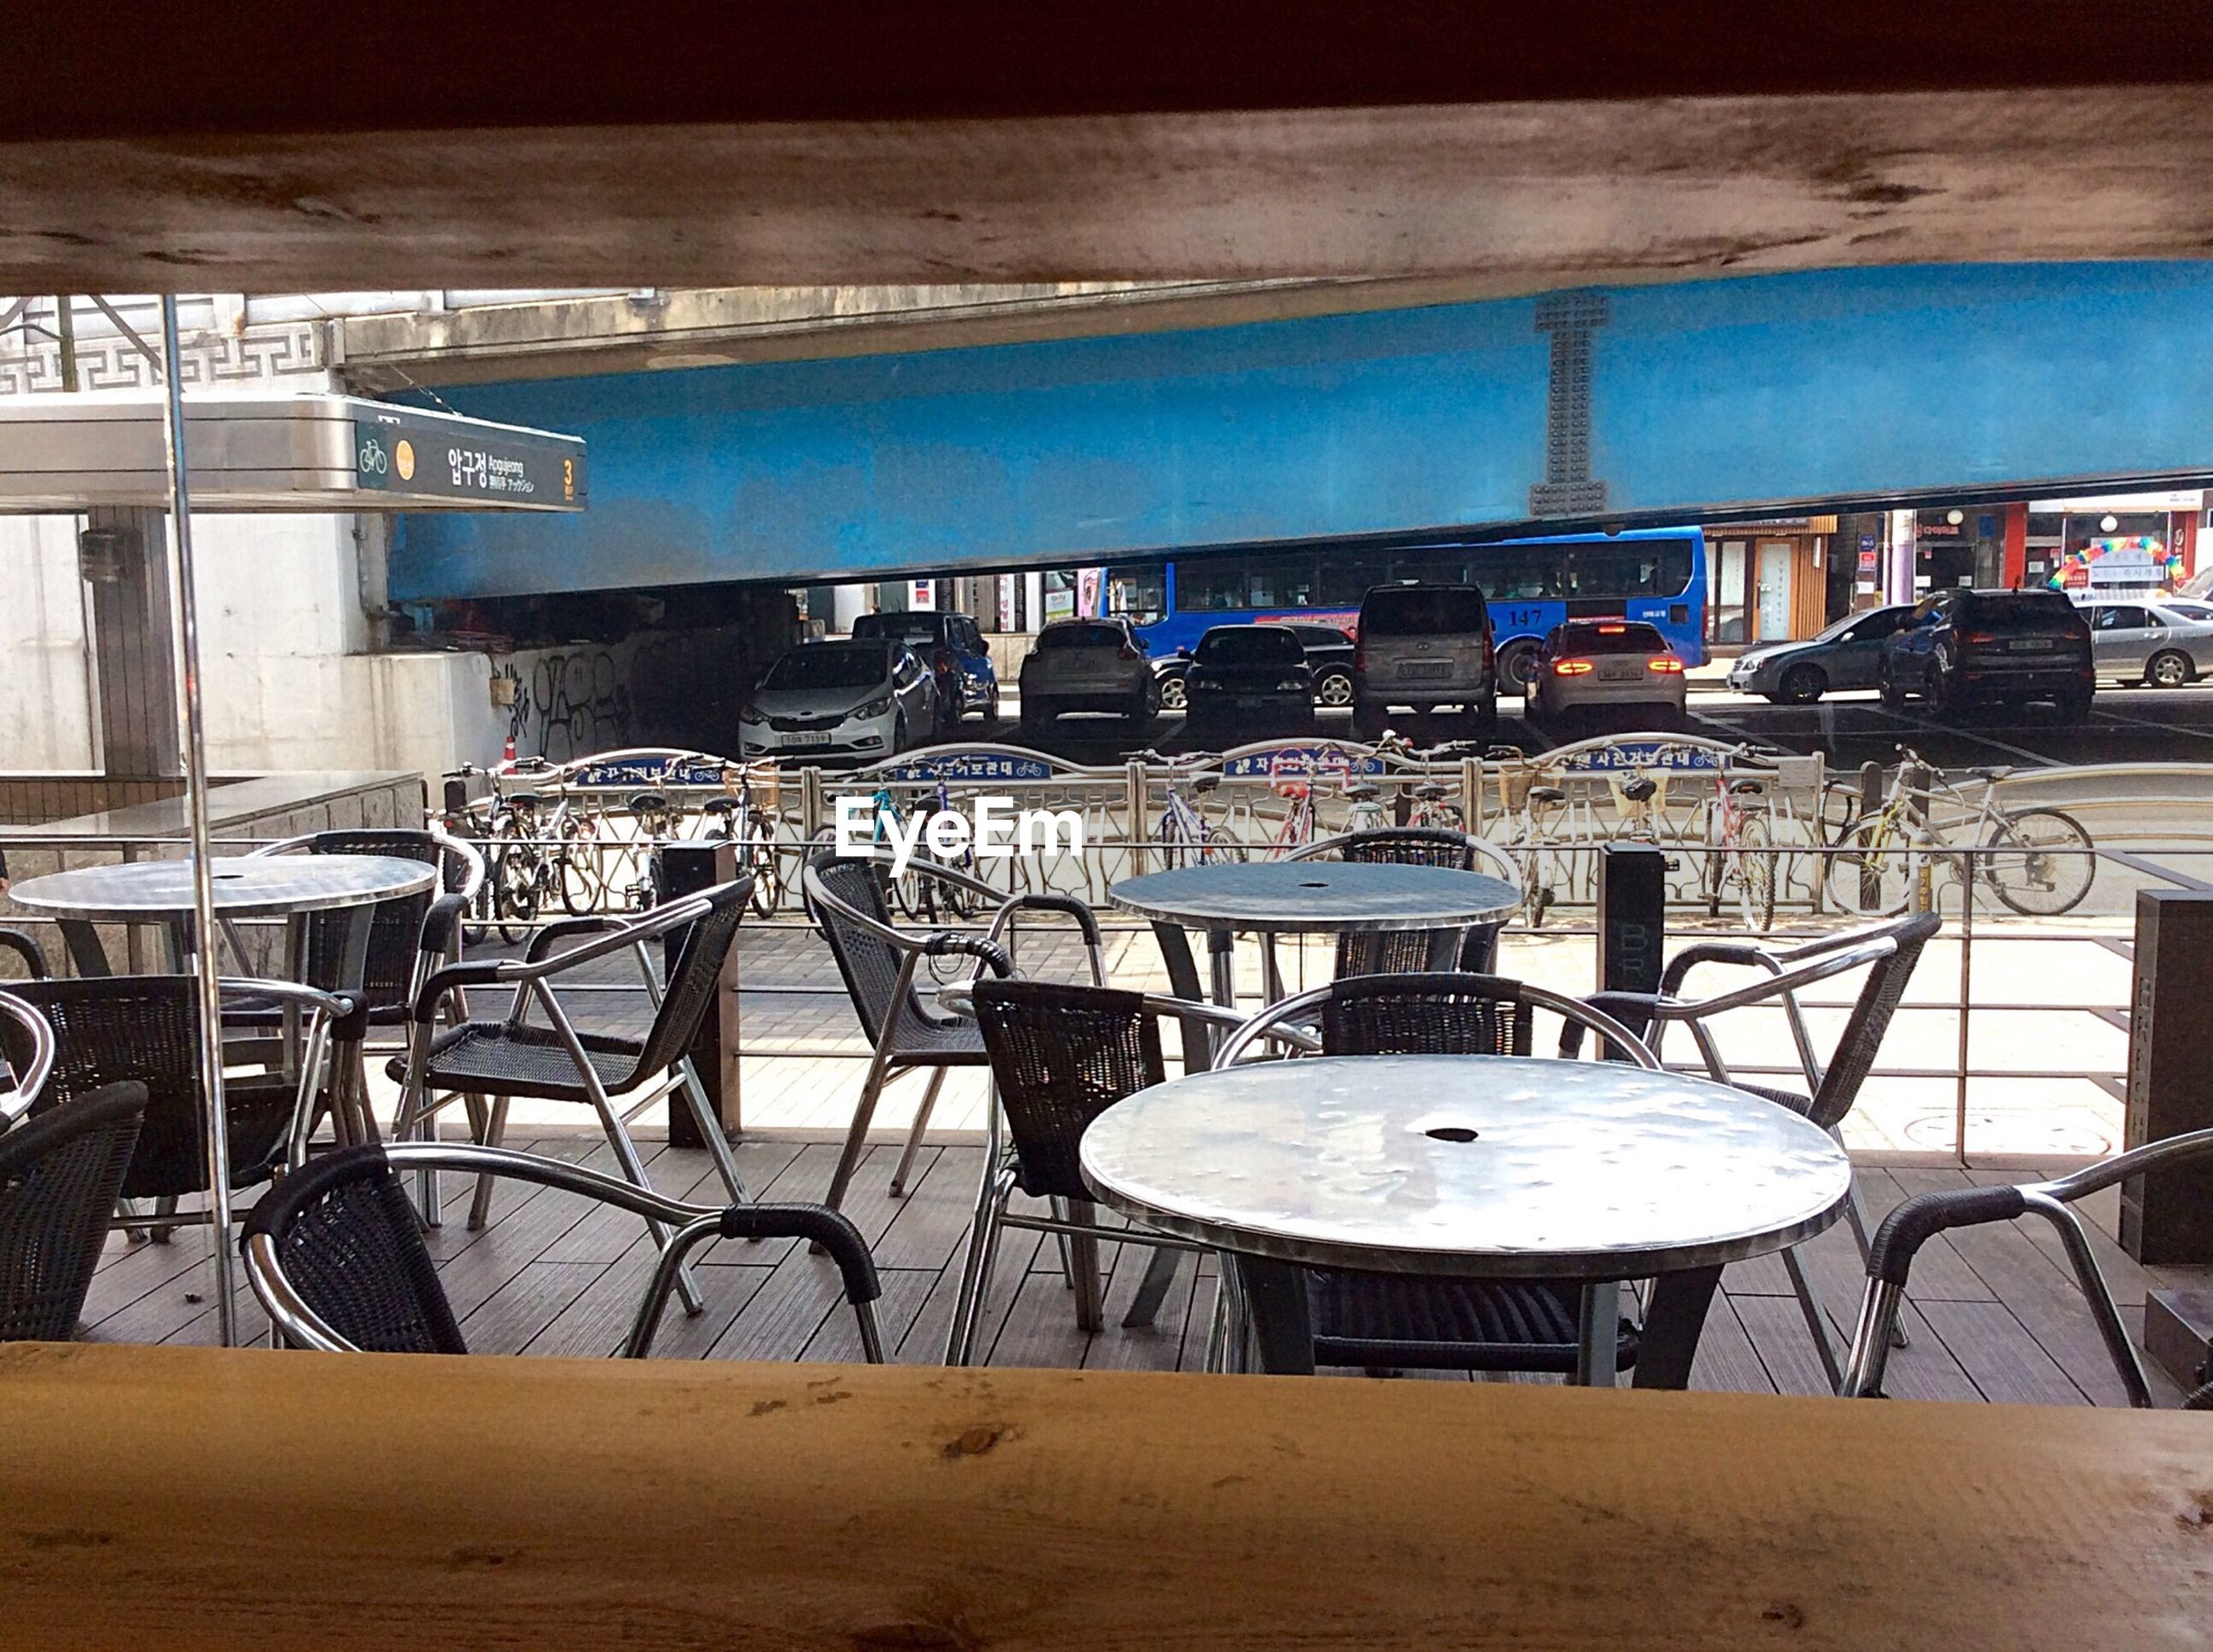 chair, absence, table, empty, built structure, restaurant, architecture, indoors, arrangement, seat, sunlight, group of objects, no people, day, large group of objects, building exterior, sidewalk cafe, blue, cafe, in a row